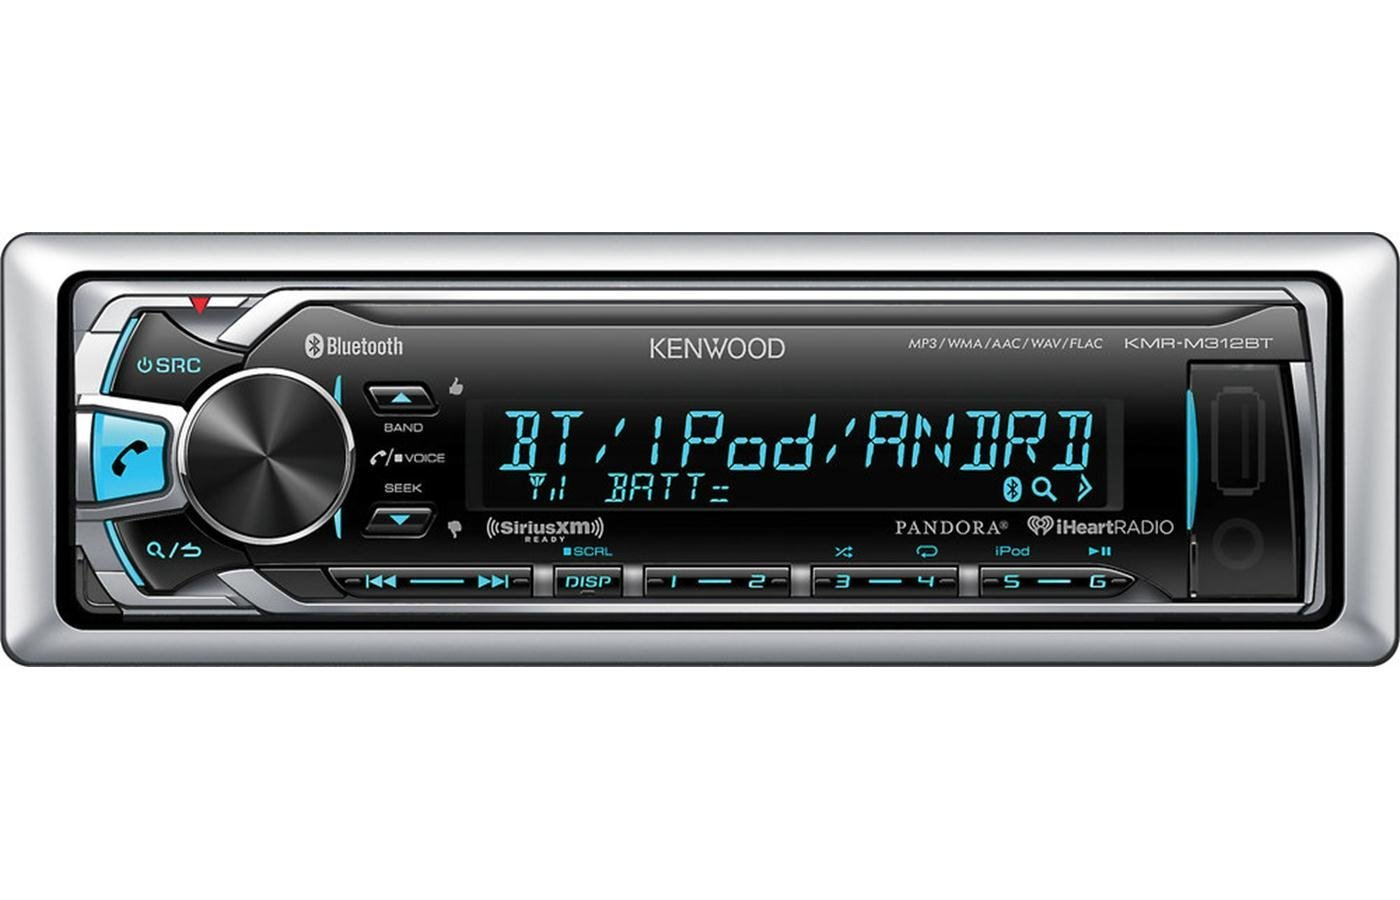 Kenwood Marine Receiver with Built in Bluetooth & Variable Color Illumination and Conformal-Coated PCB Circuit Board & Covered USB and AUX Inputs